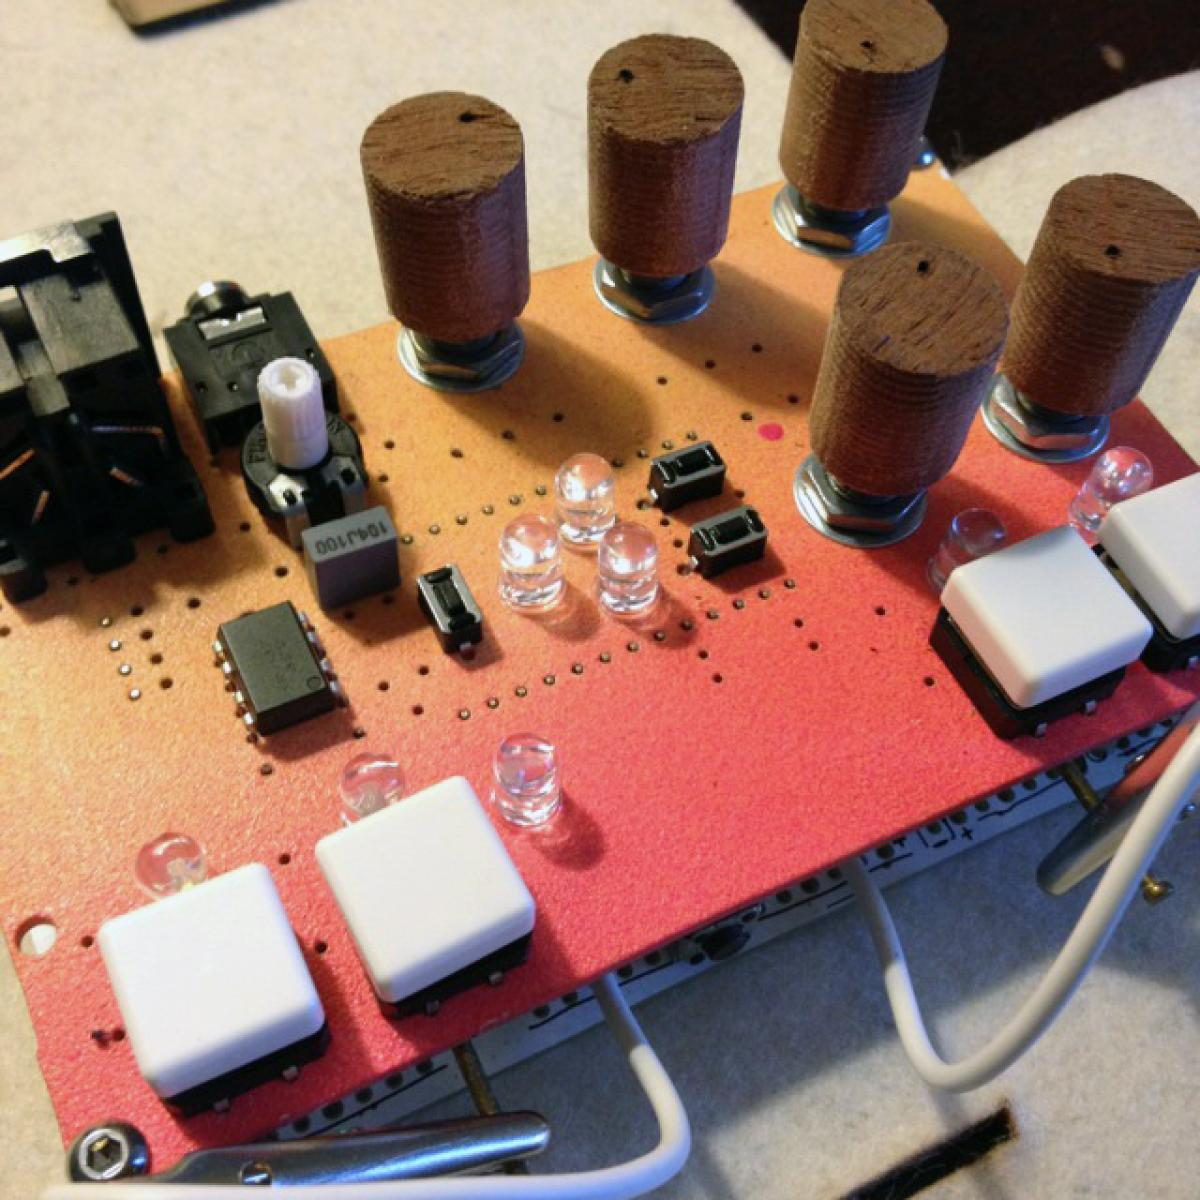 Matrixsynth Sunday May 3 2015 Diy Voltagecontrolled Amplifier Hackme Via Classifieds